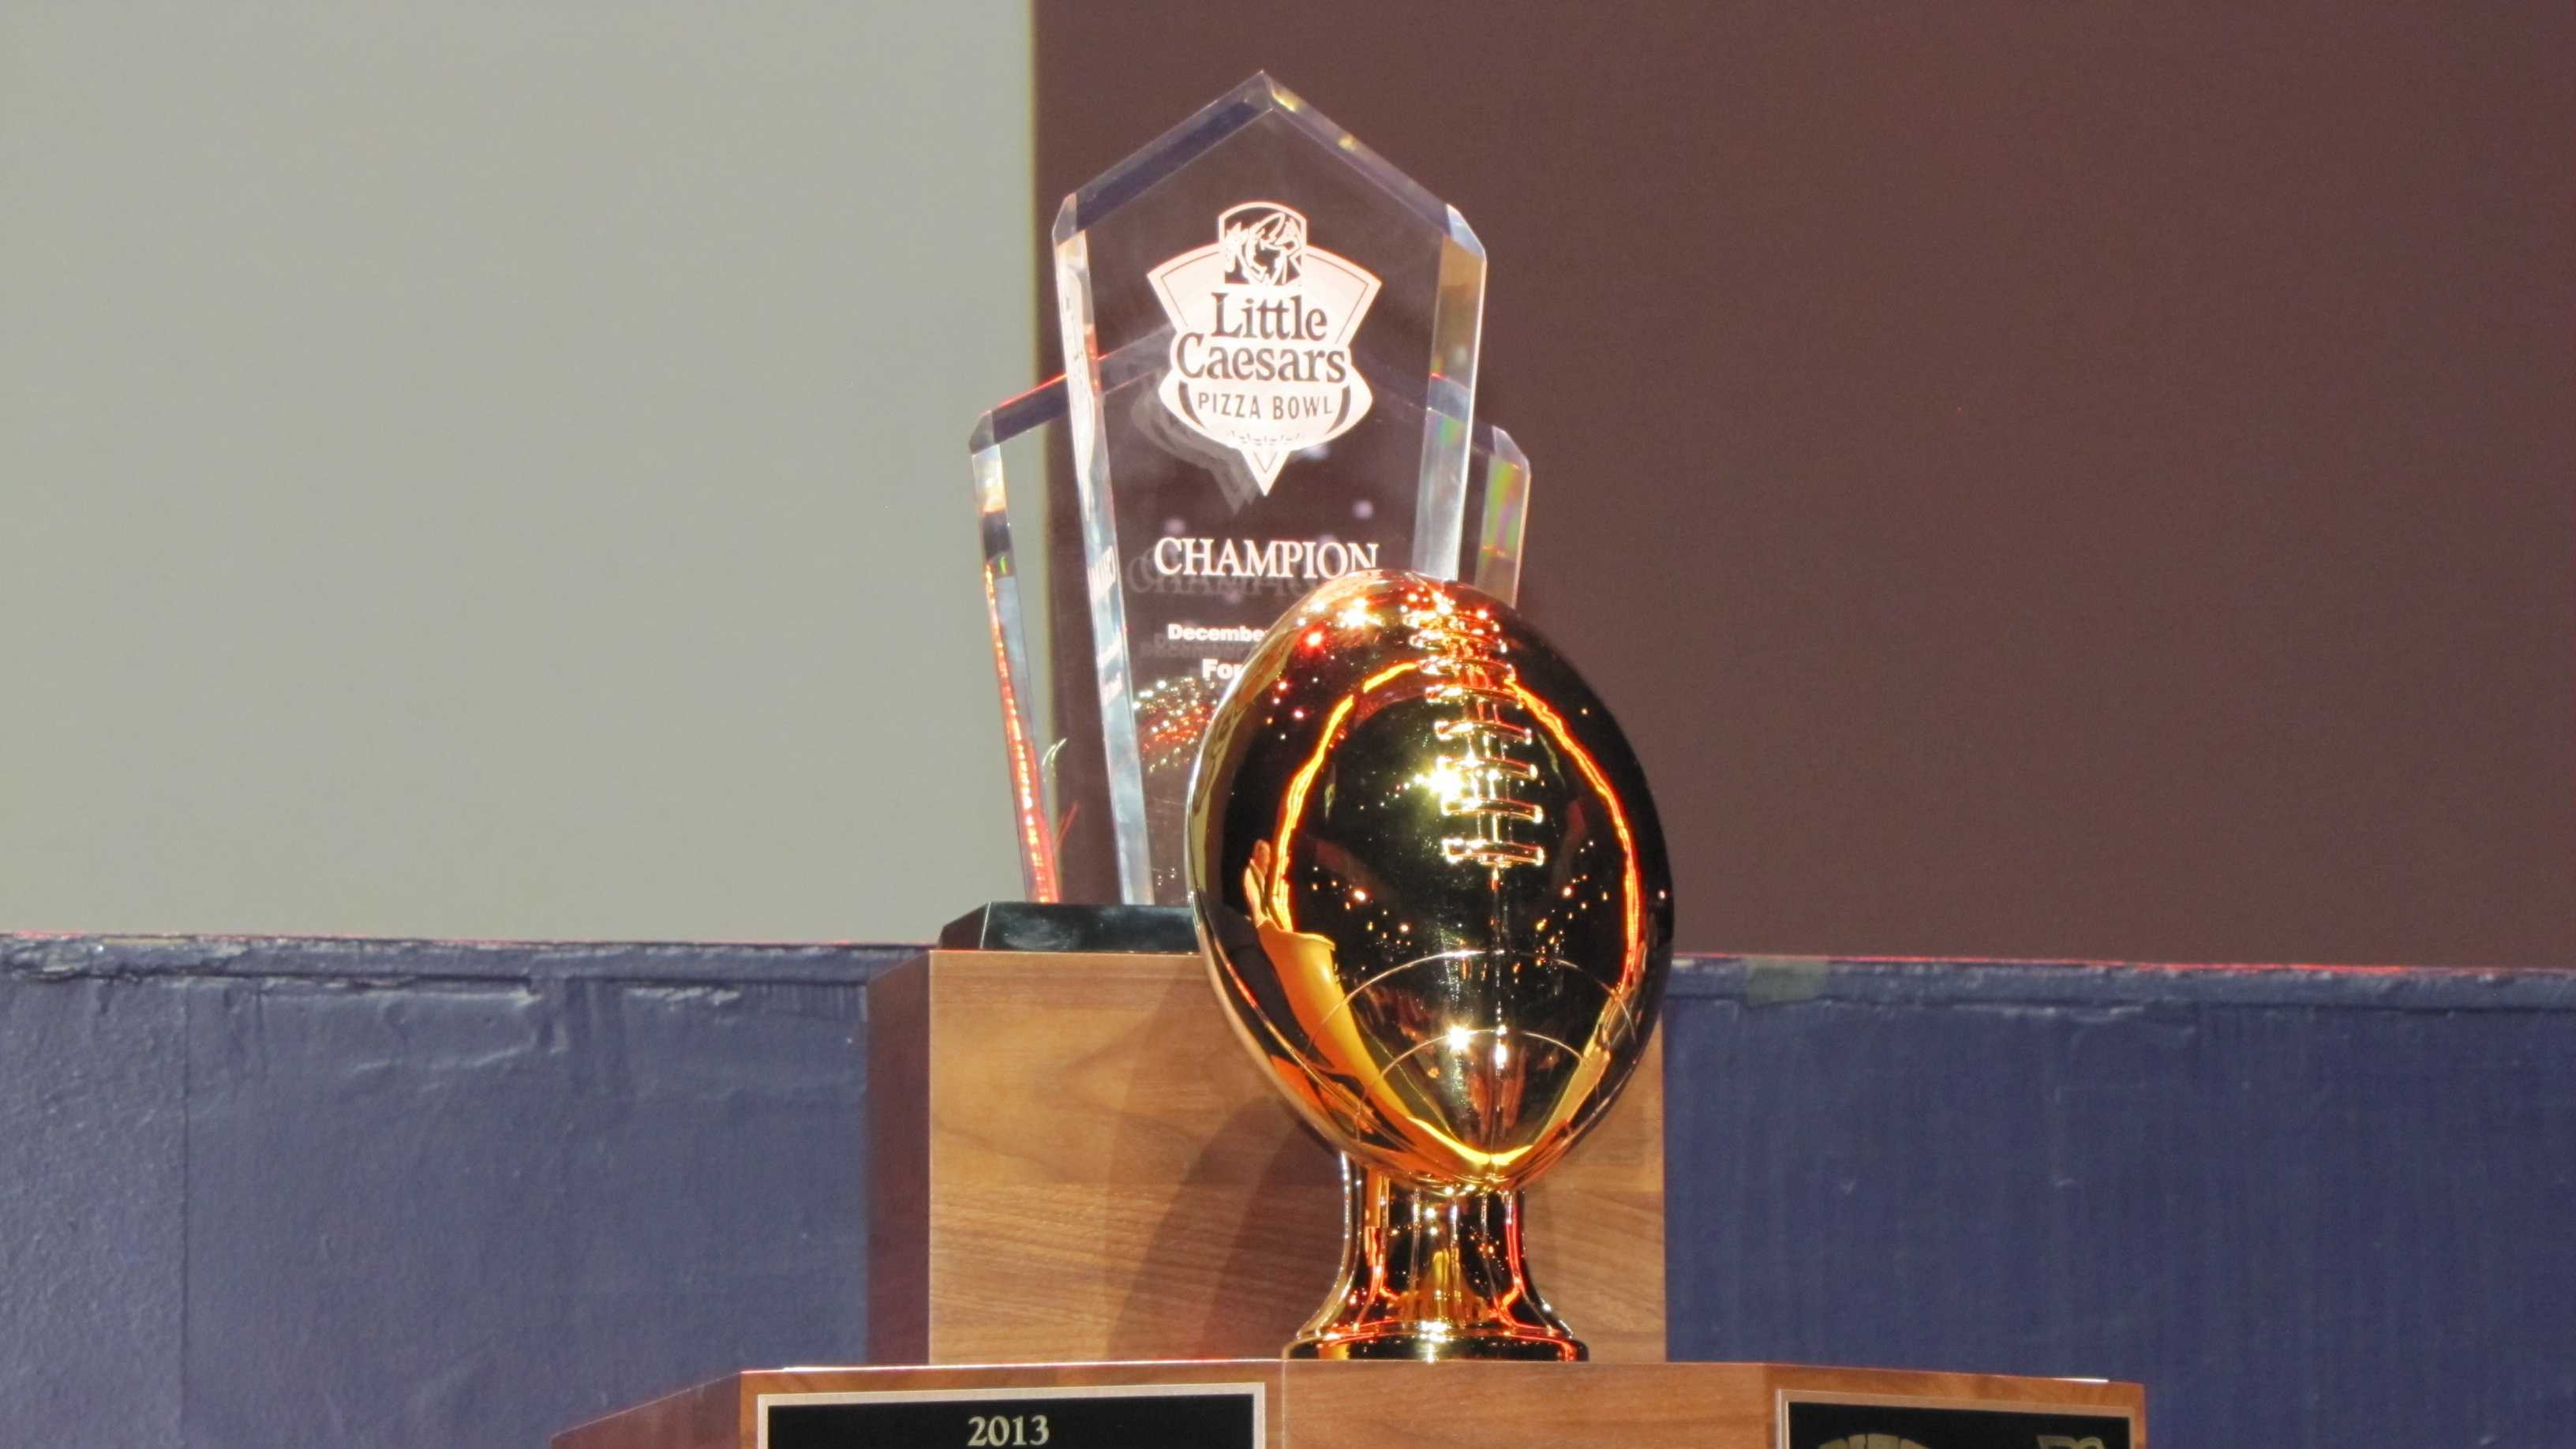 Little Caesars Pizza Bowl trophy